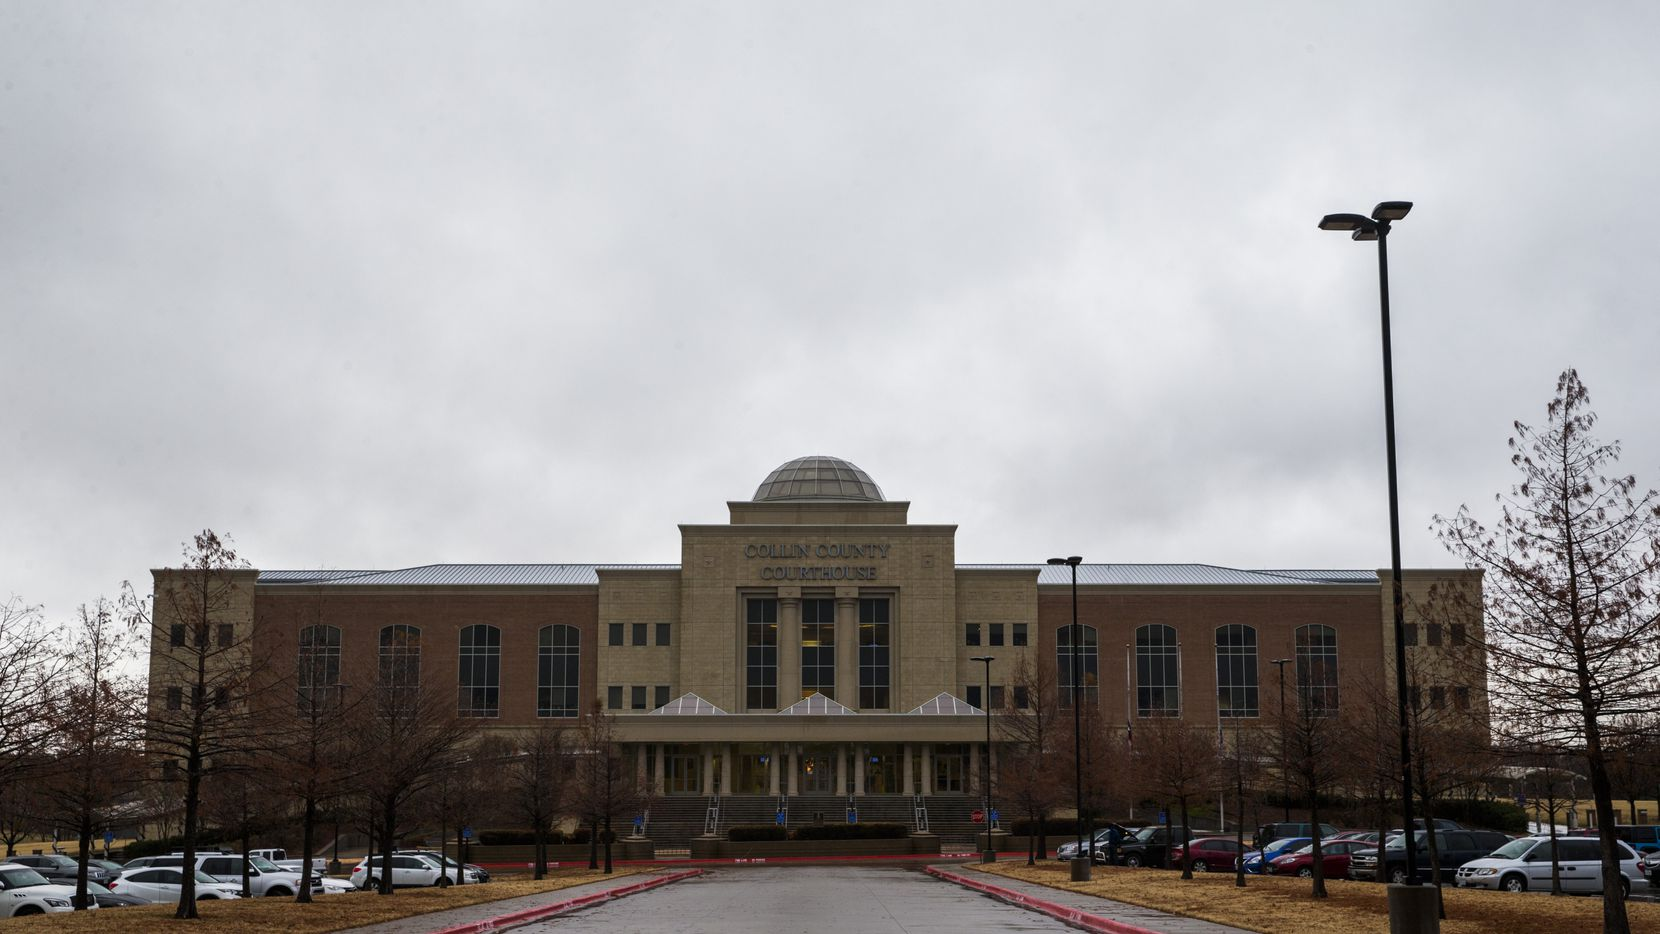 The Collin County Courthouse as photographed on Thursday, December 13, 2018 in McKinney. (Ashley Landis/The Dallas Morning News)